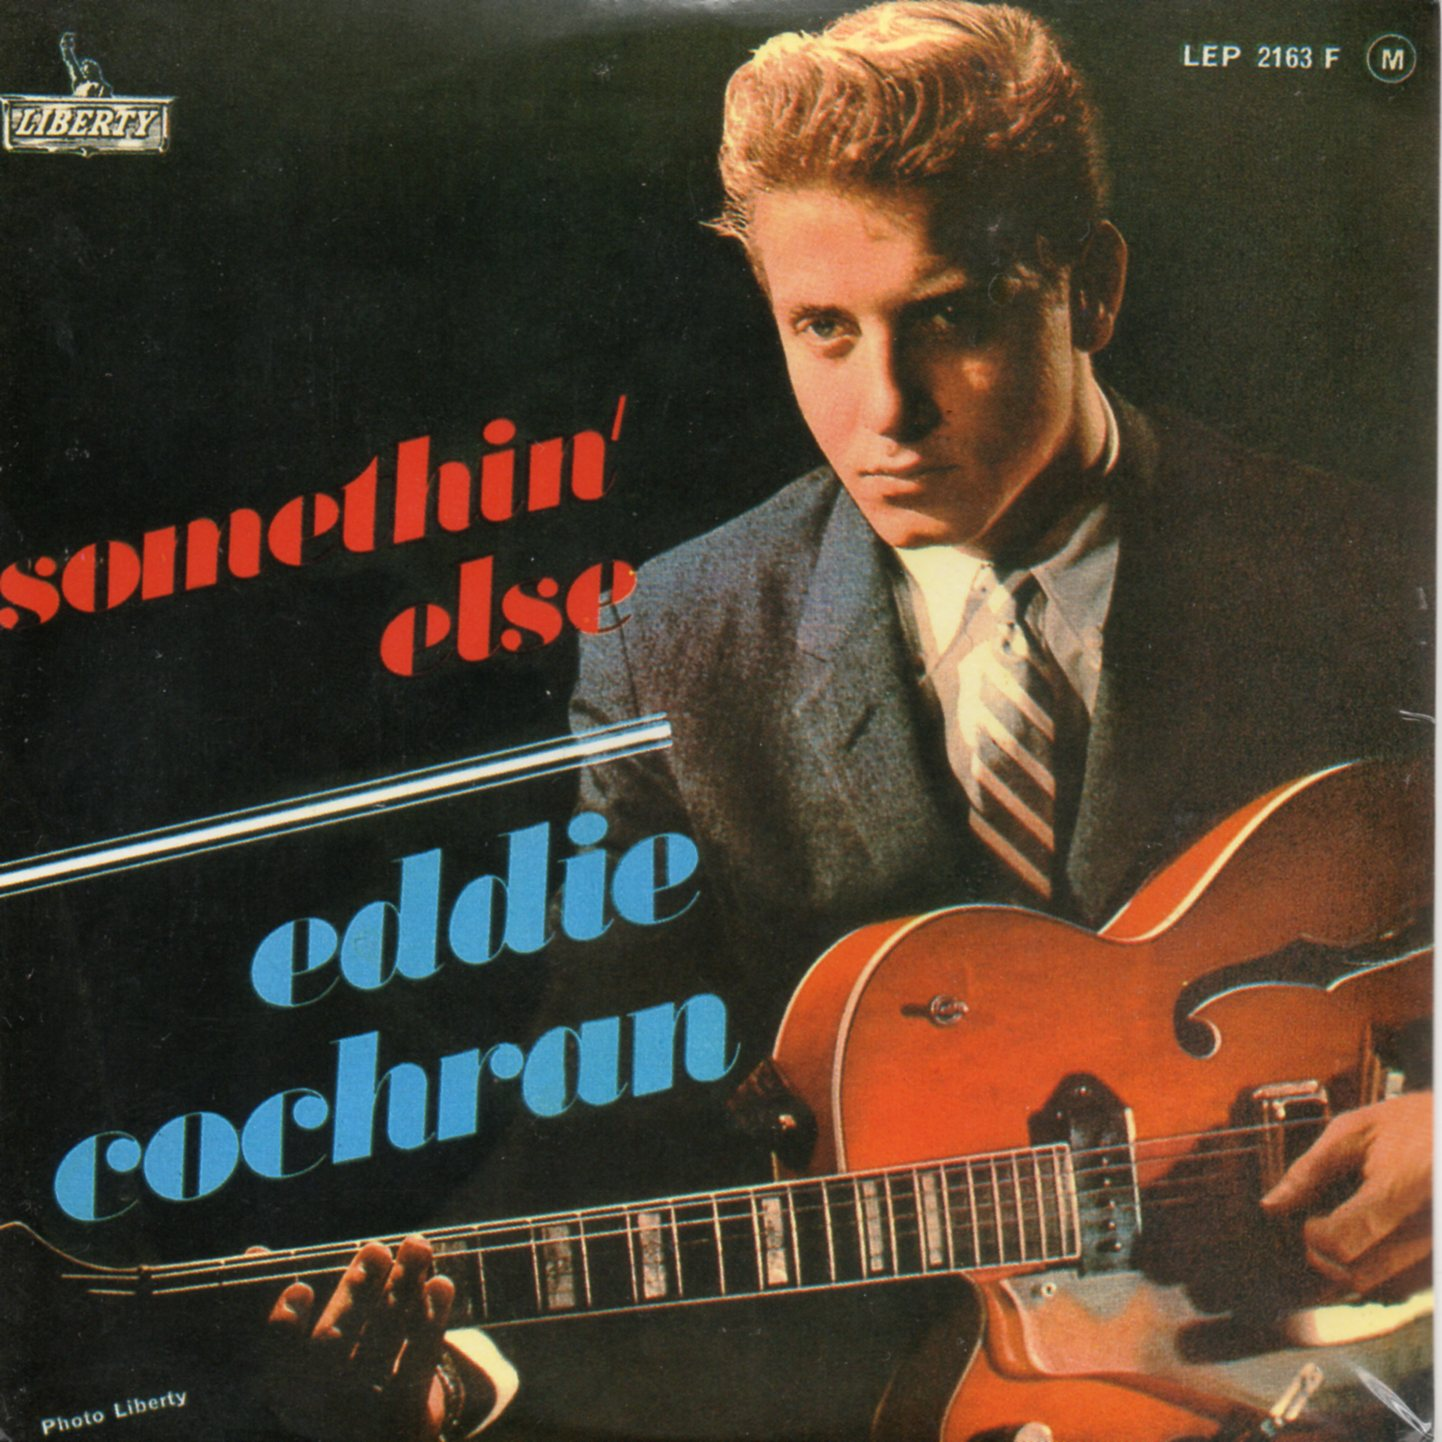 EDDIE COCHRAN - Somethin' else 4-track CARD SLEEVE reissue original 60s EP ! Rare !! - CD single